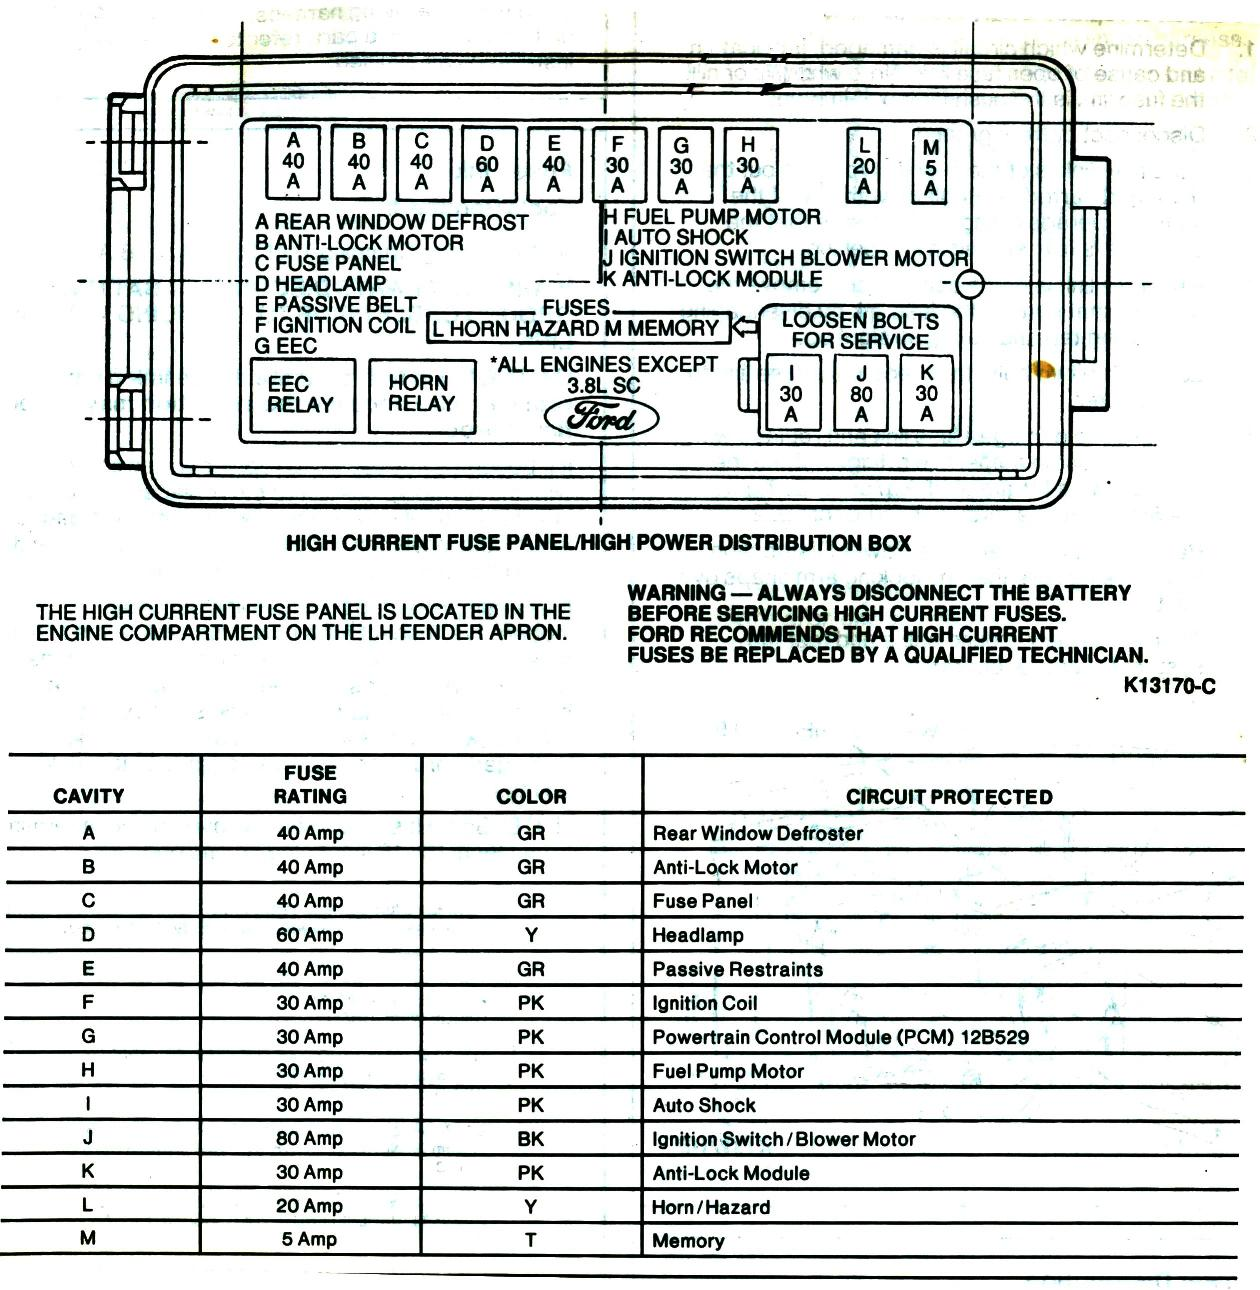 1990 ford taurus fuse box diagram wiring diagram experts1990 ford taurus fuse box wiring diagram pdf 1990 ford taurus fuse box diagram